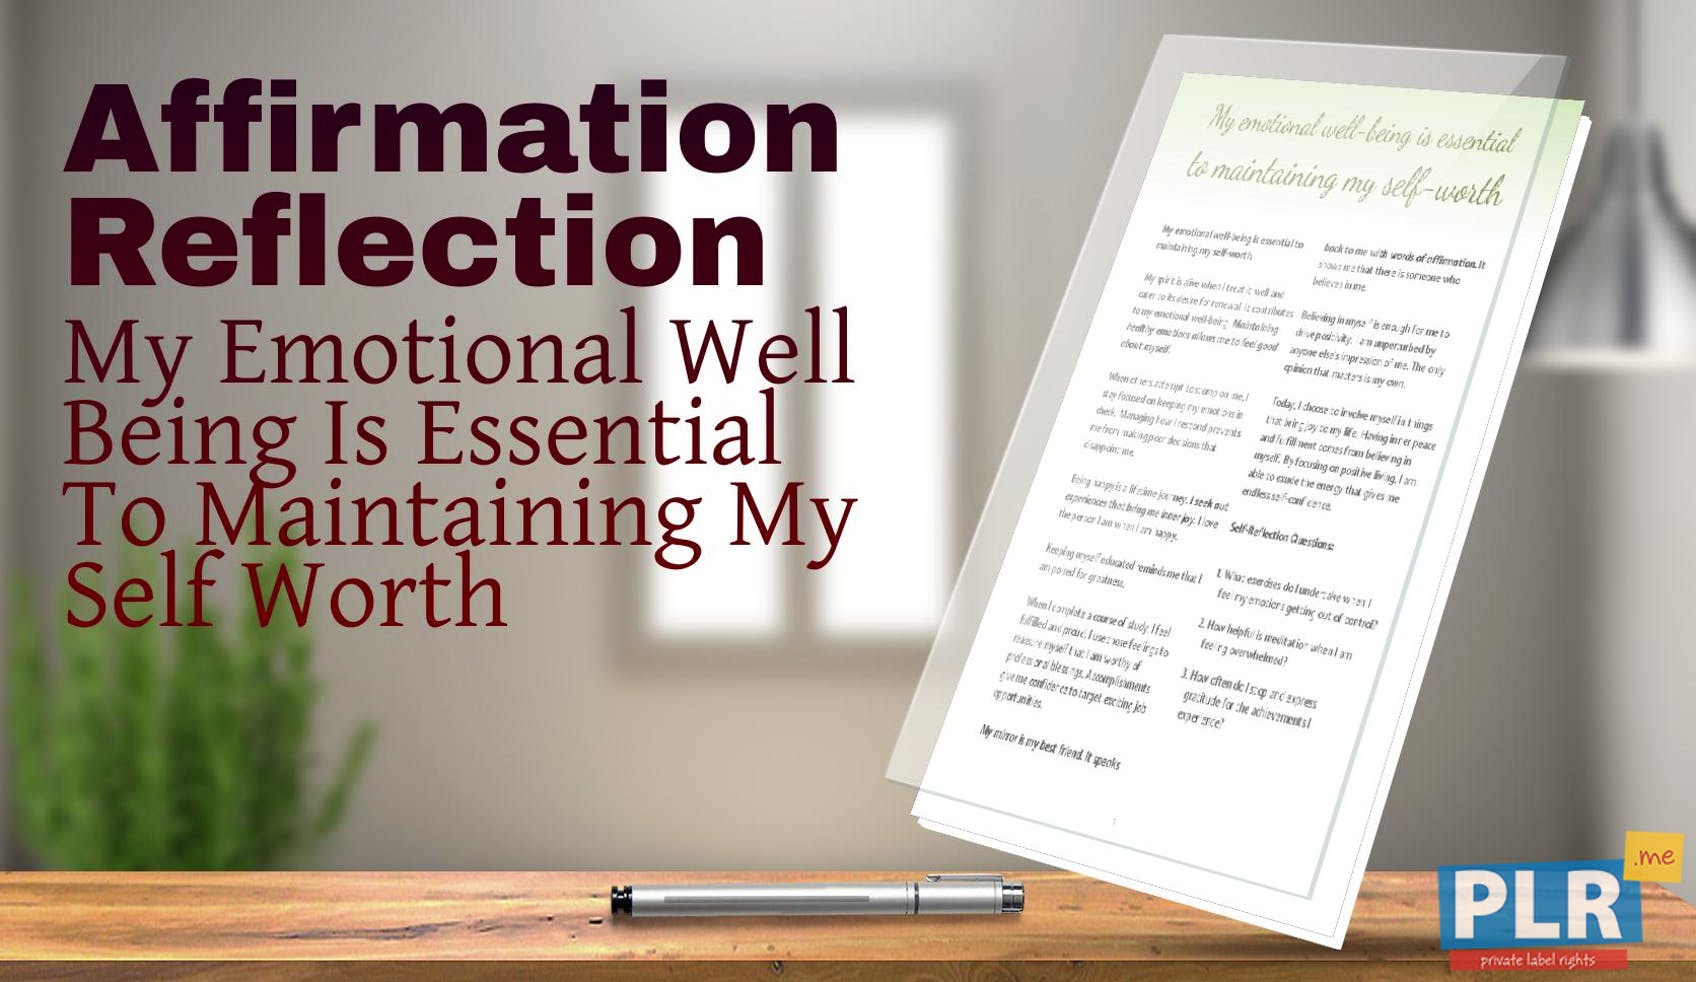 My Emotional Well Being Is Essential To Maintaining My Self Worth